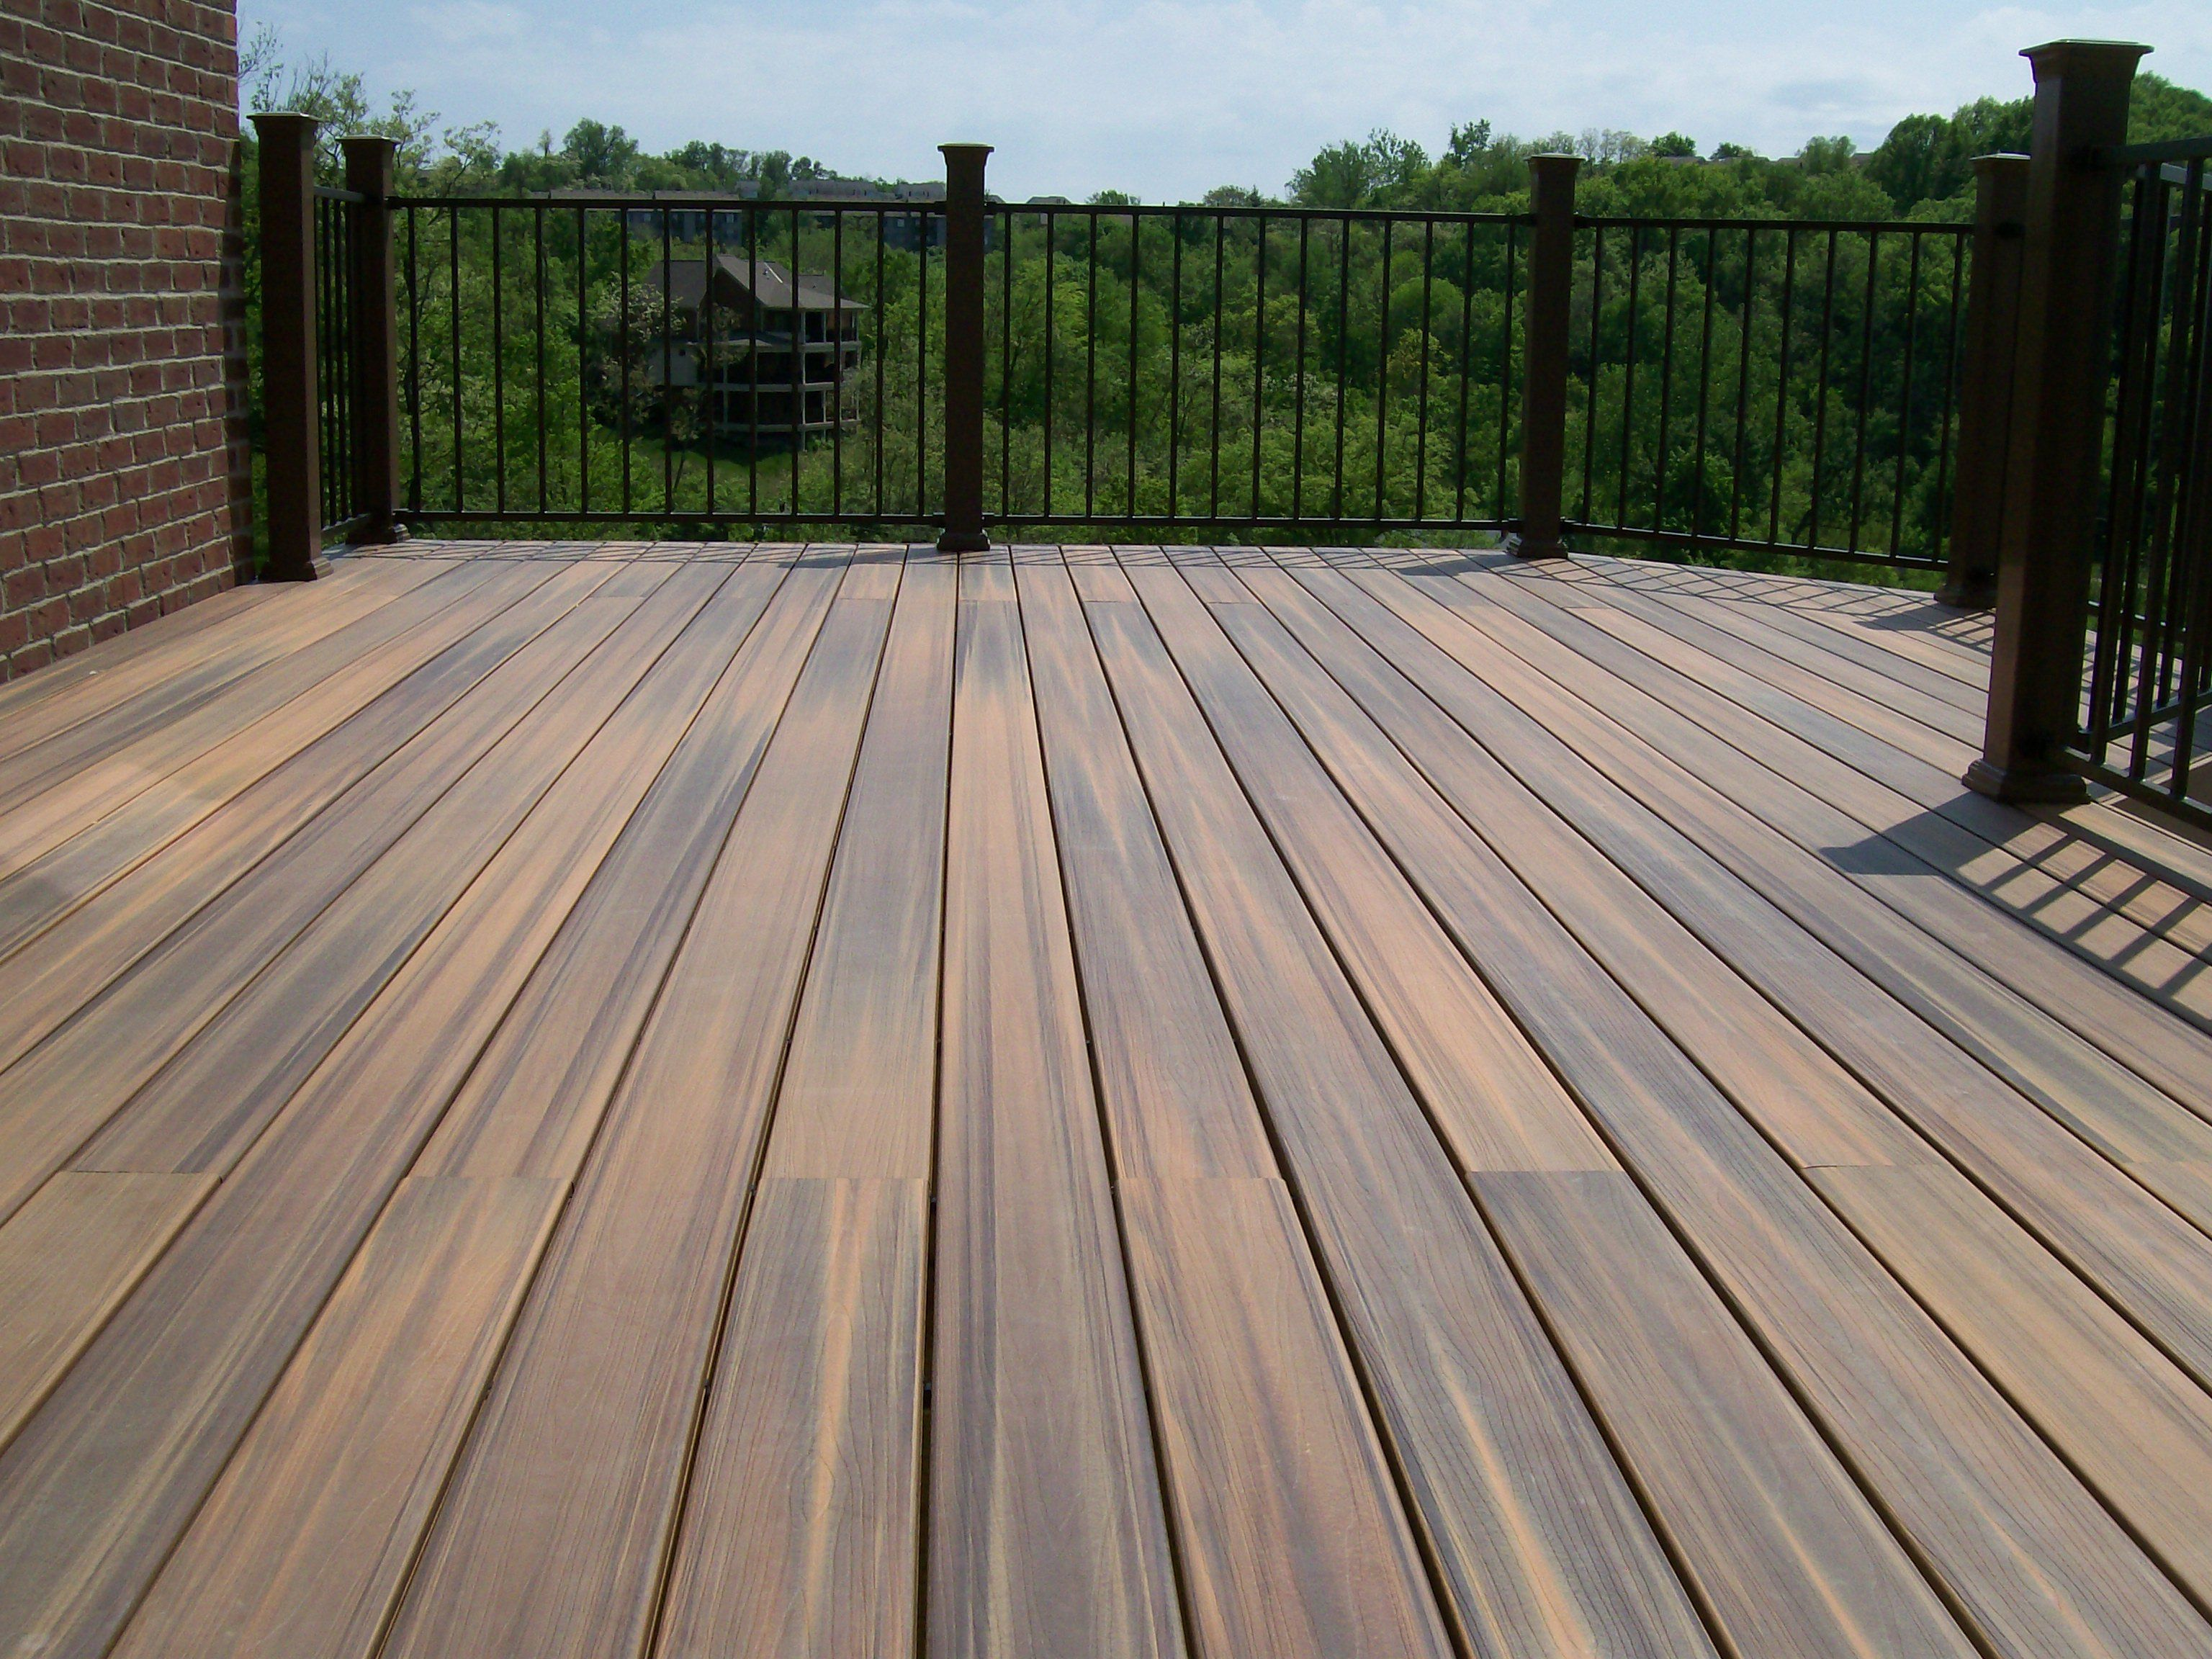 Impressive trex composite decking 3 deck composite decking impressive trex composite decking 3 deck composite decking baanklon Image collections